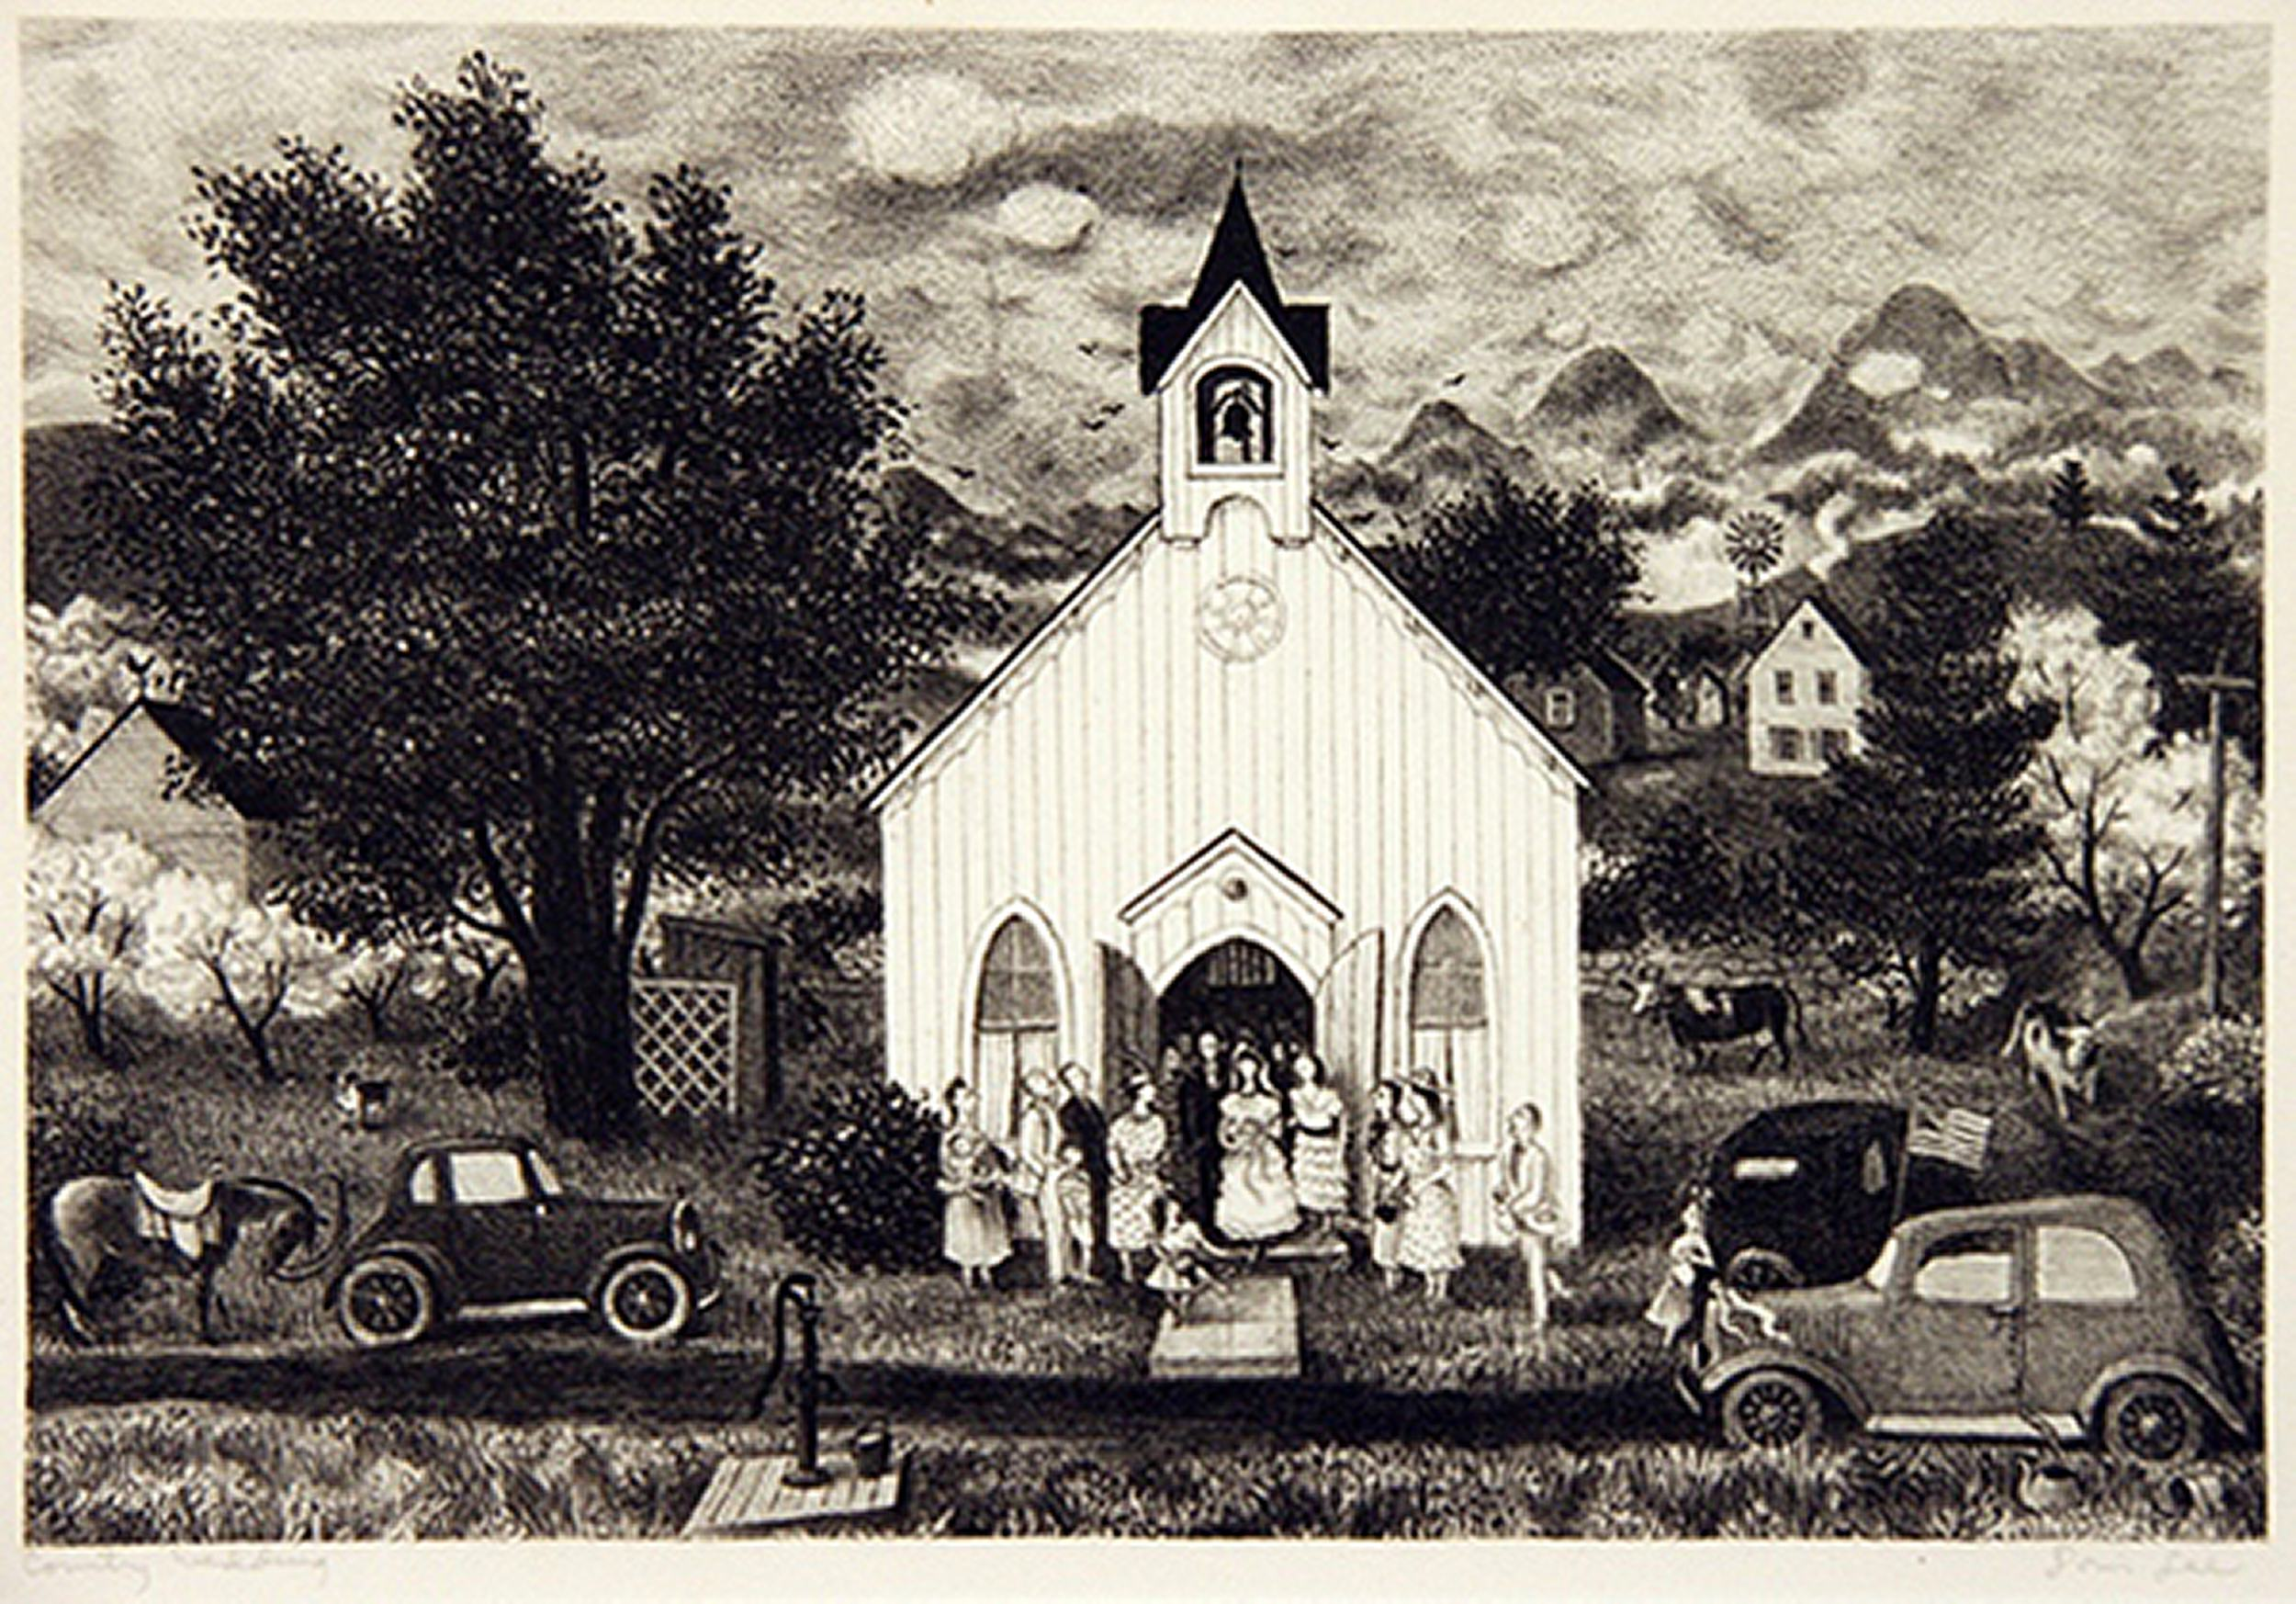 2005.005 | Lee, Doris Lee | COUNTRY WEDDING | lithograph 8 X 11-3/4"